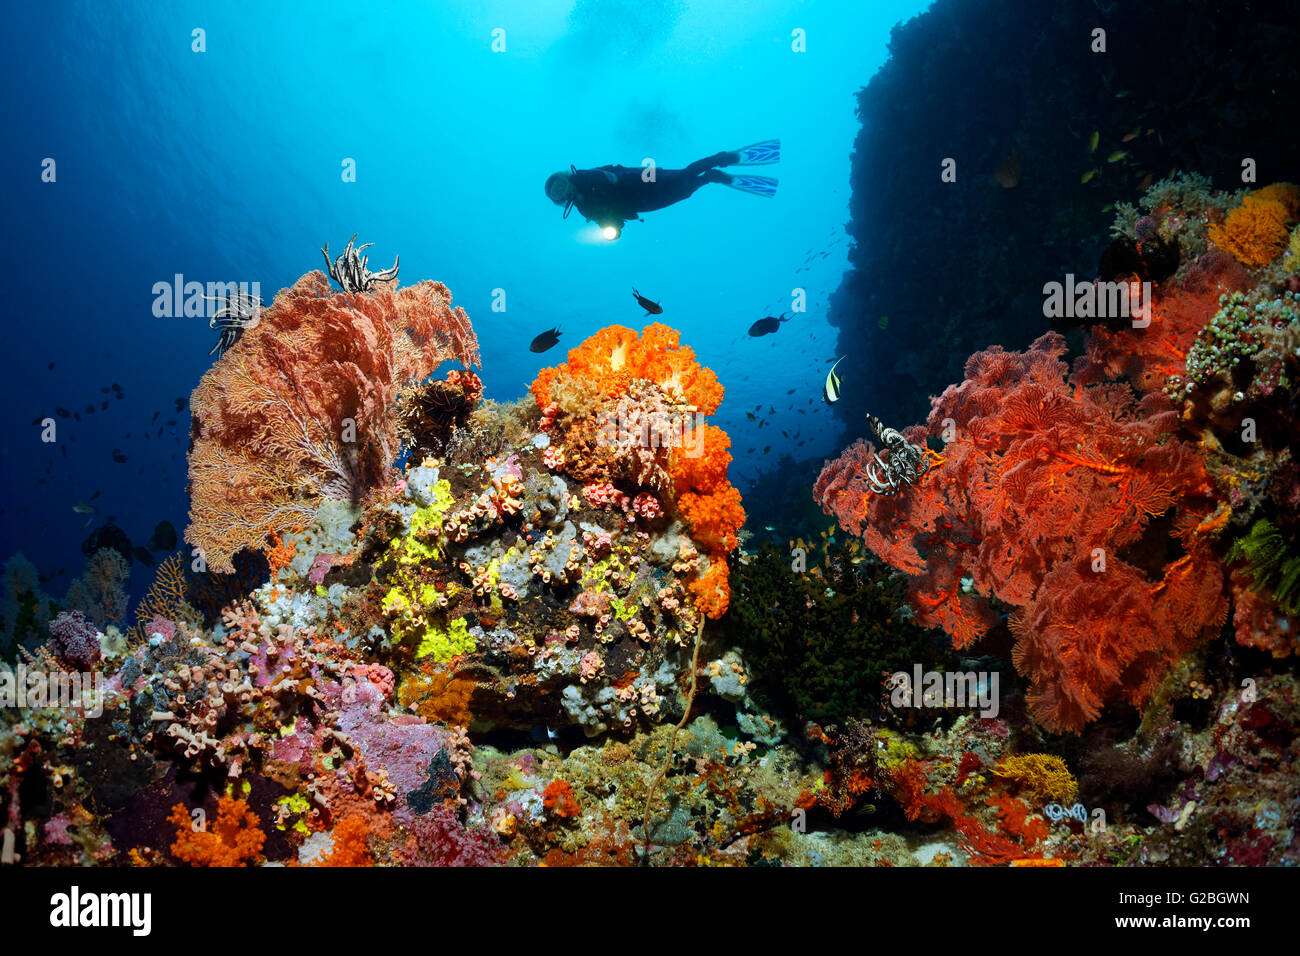 Diver near cliff, Coral reef with fish, invertebrates and corals, Great Barrier Reef, Queensland, Cairns, Pacific - Stock Image